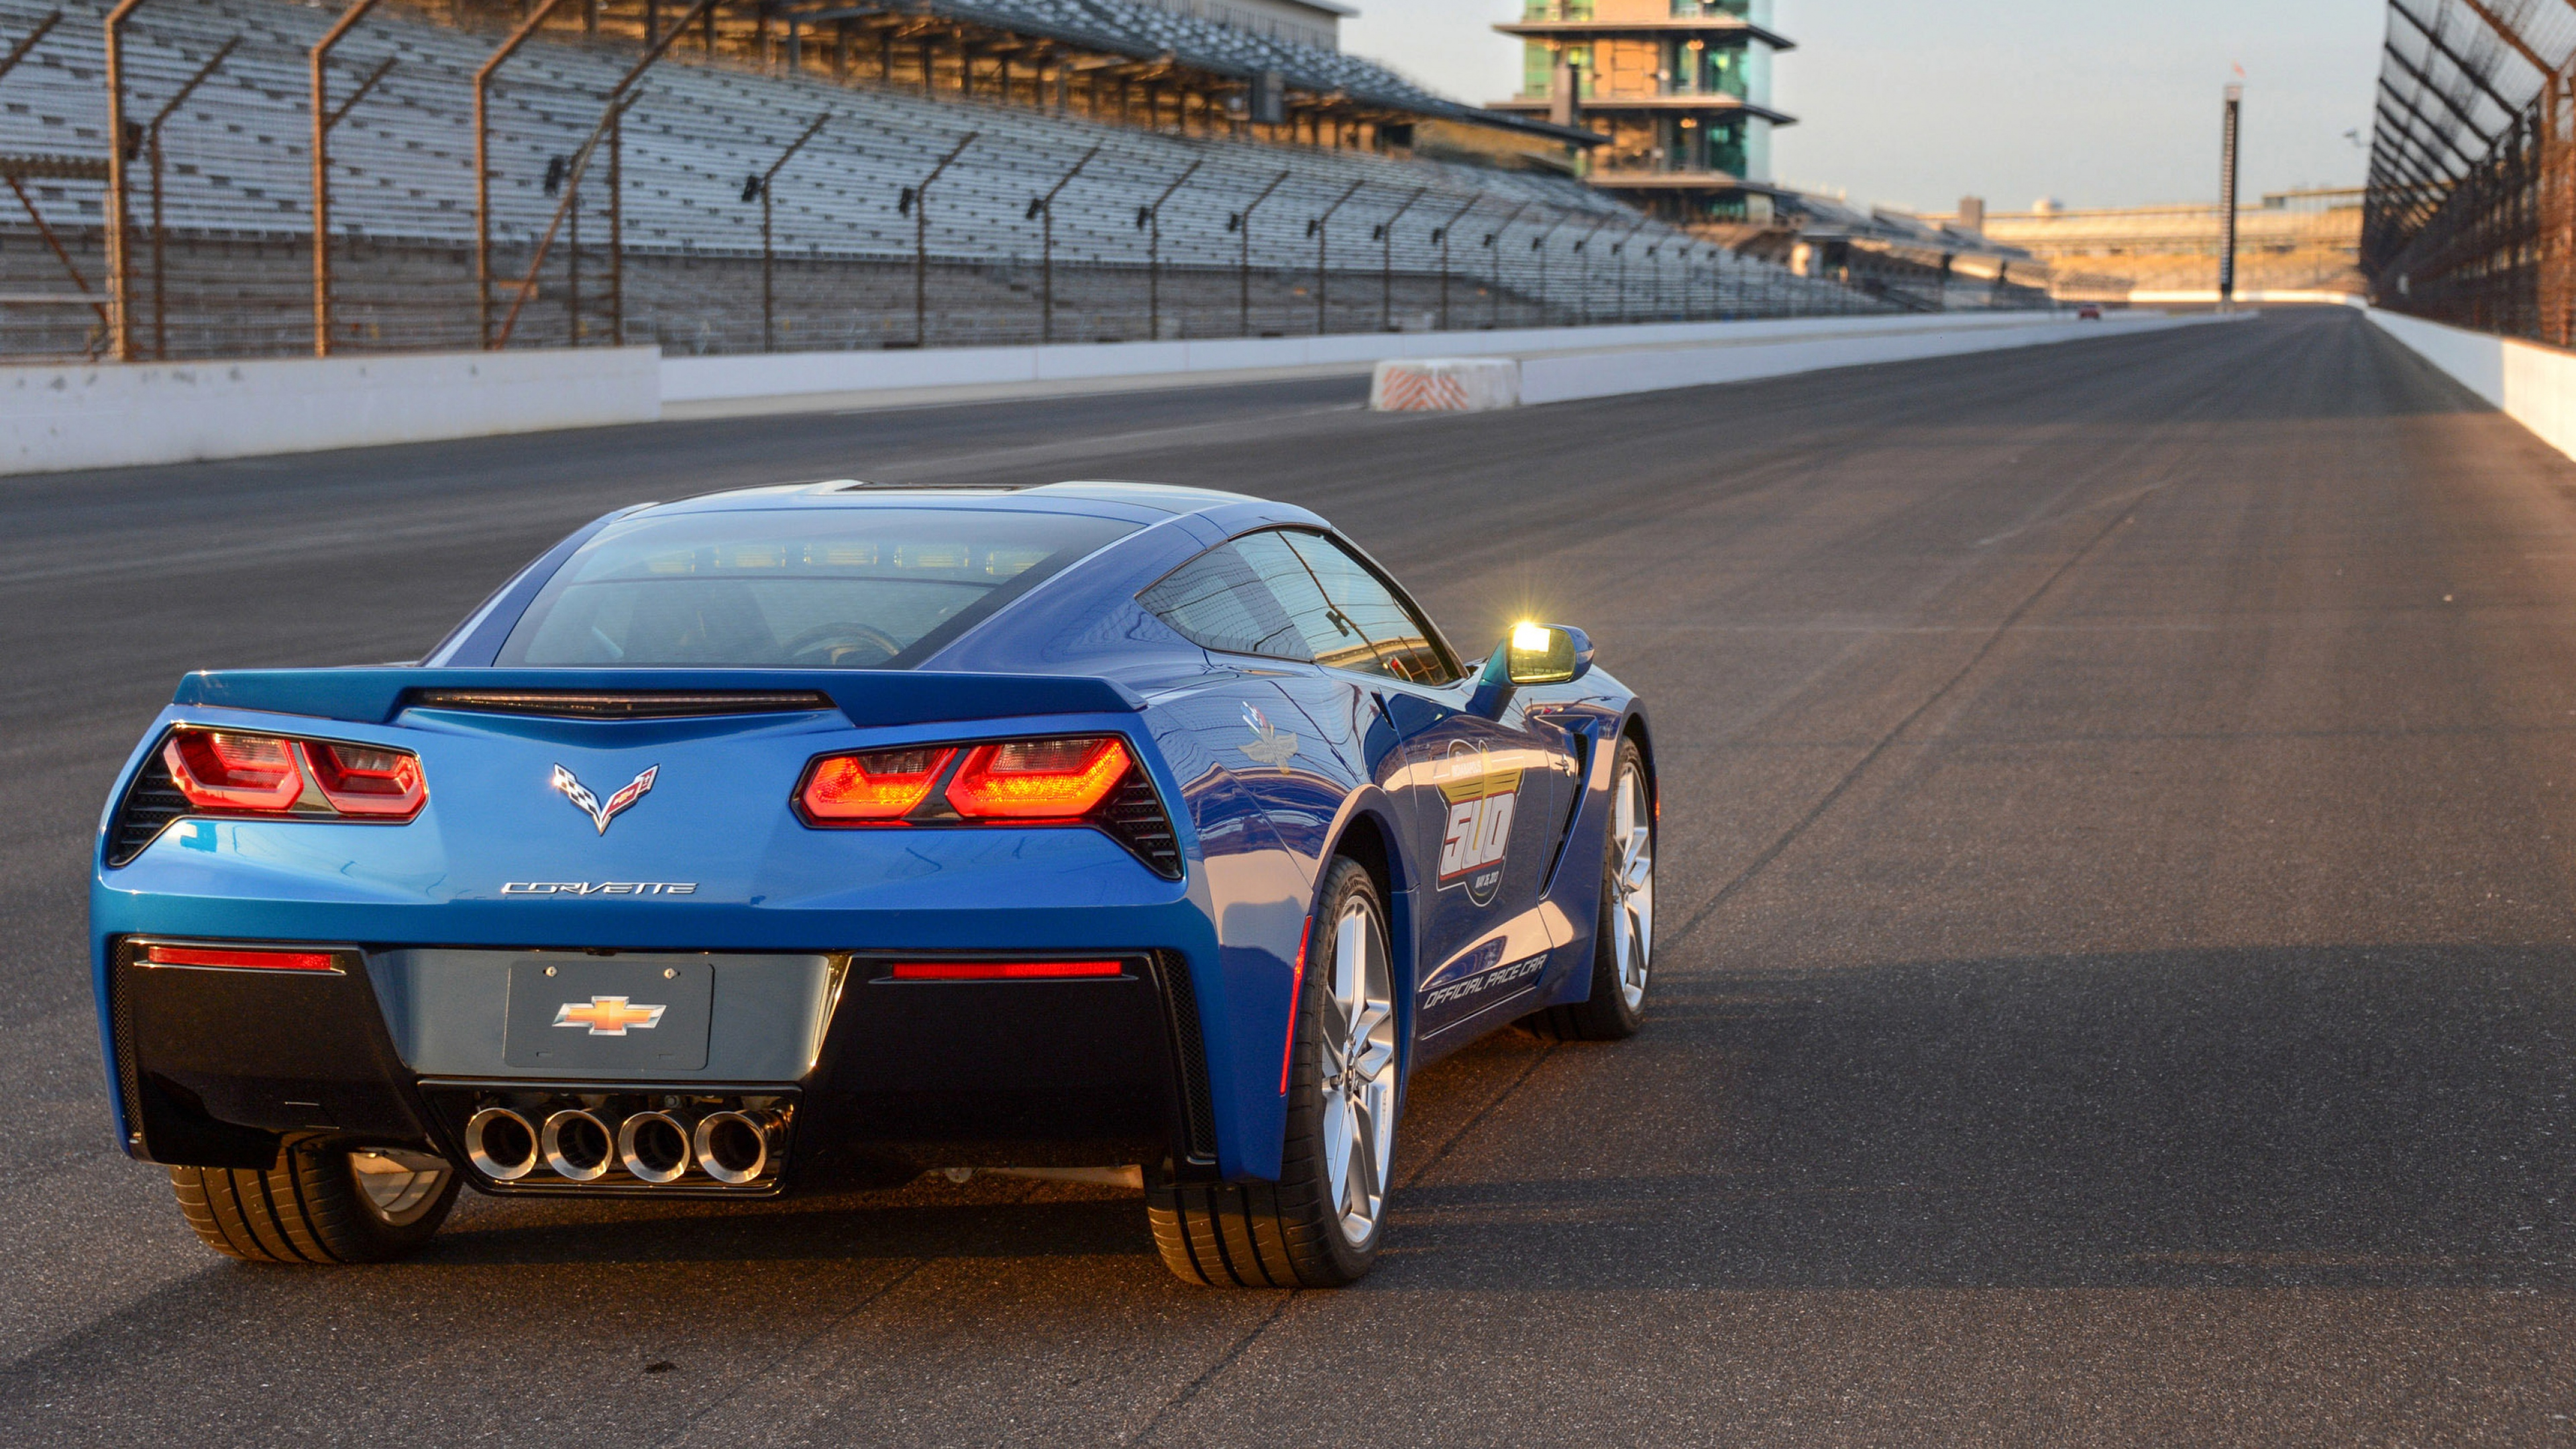 3840x2160 Wallpaper chevrolet corvette stingray c7 indy 500 pace 3840x2160